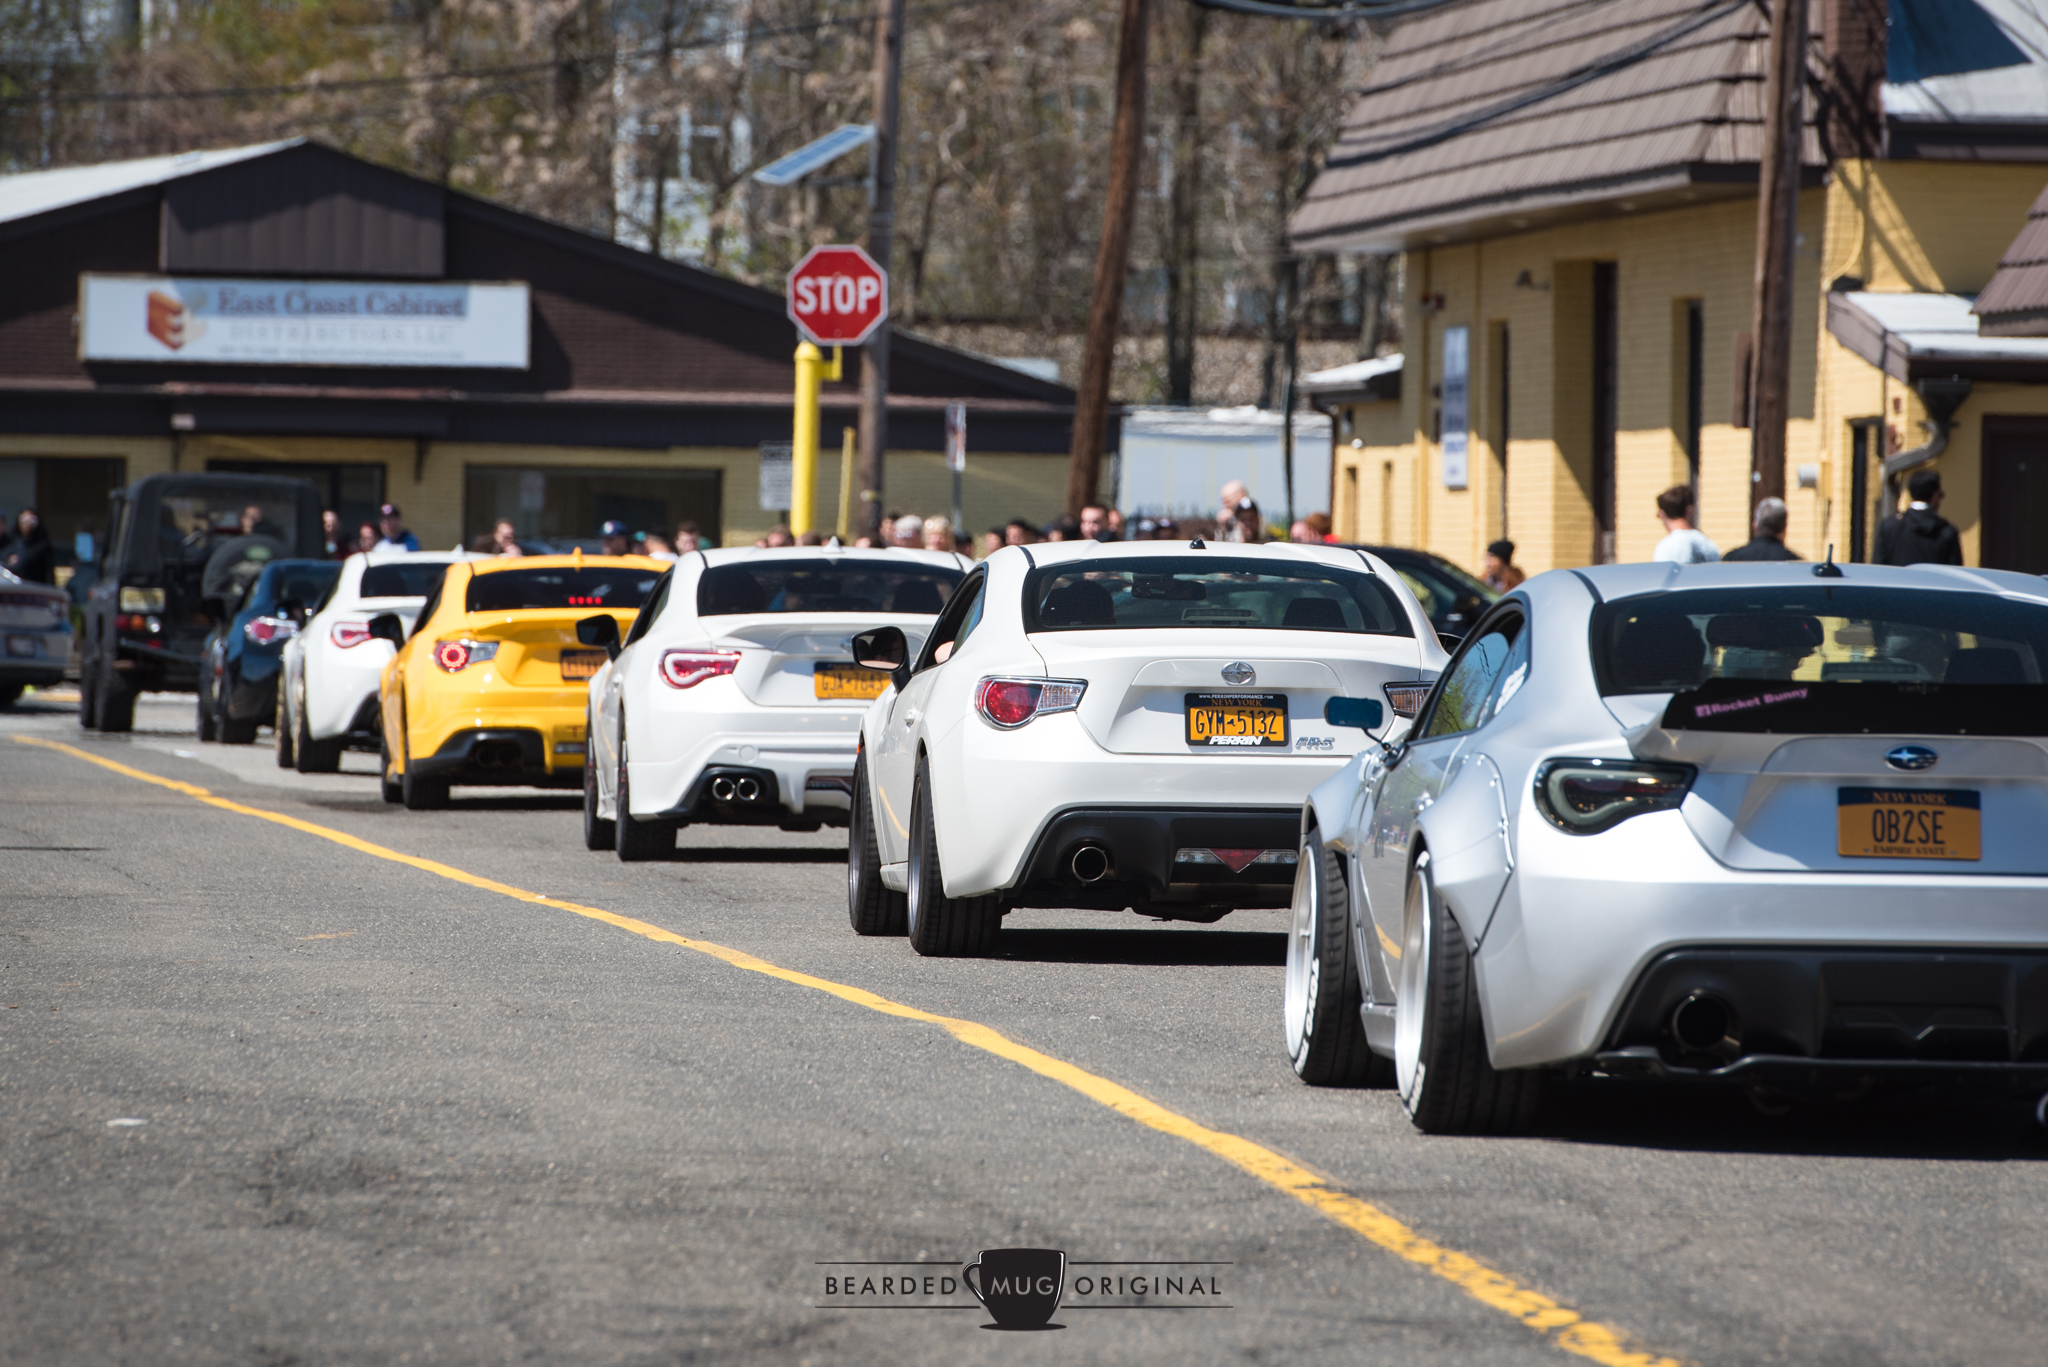 C&Cs are great ways for groups of like-minded folks to gather together, such as these FR-S/BRZ owners.